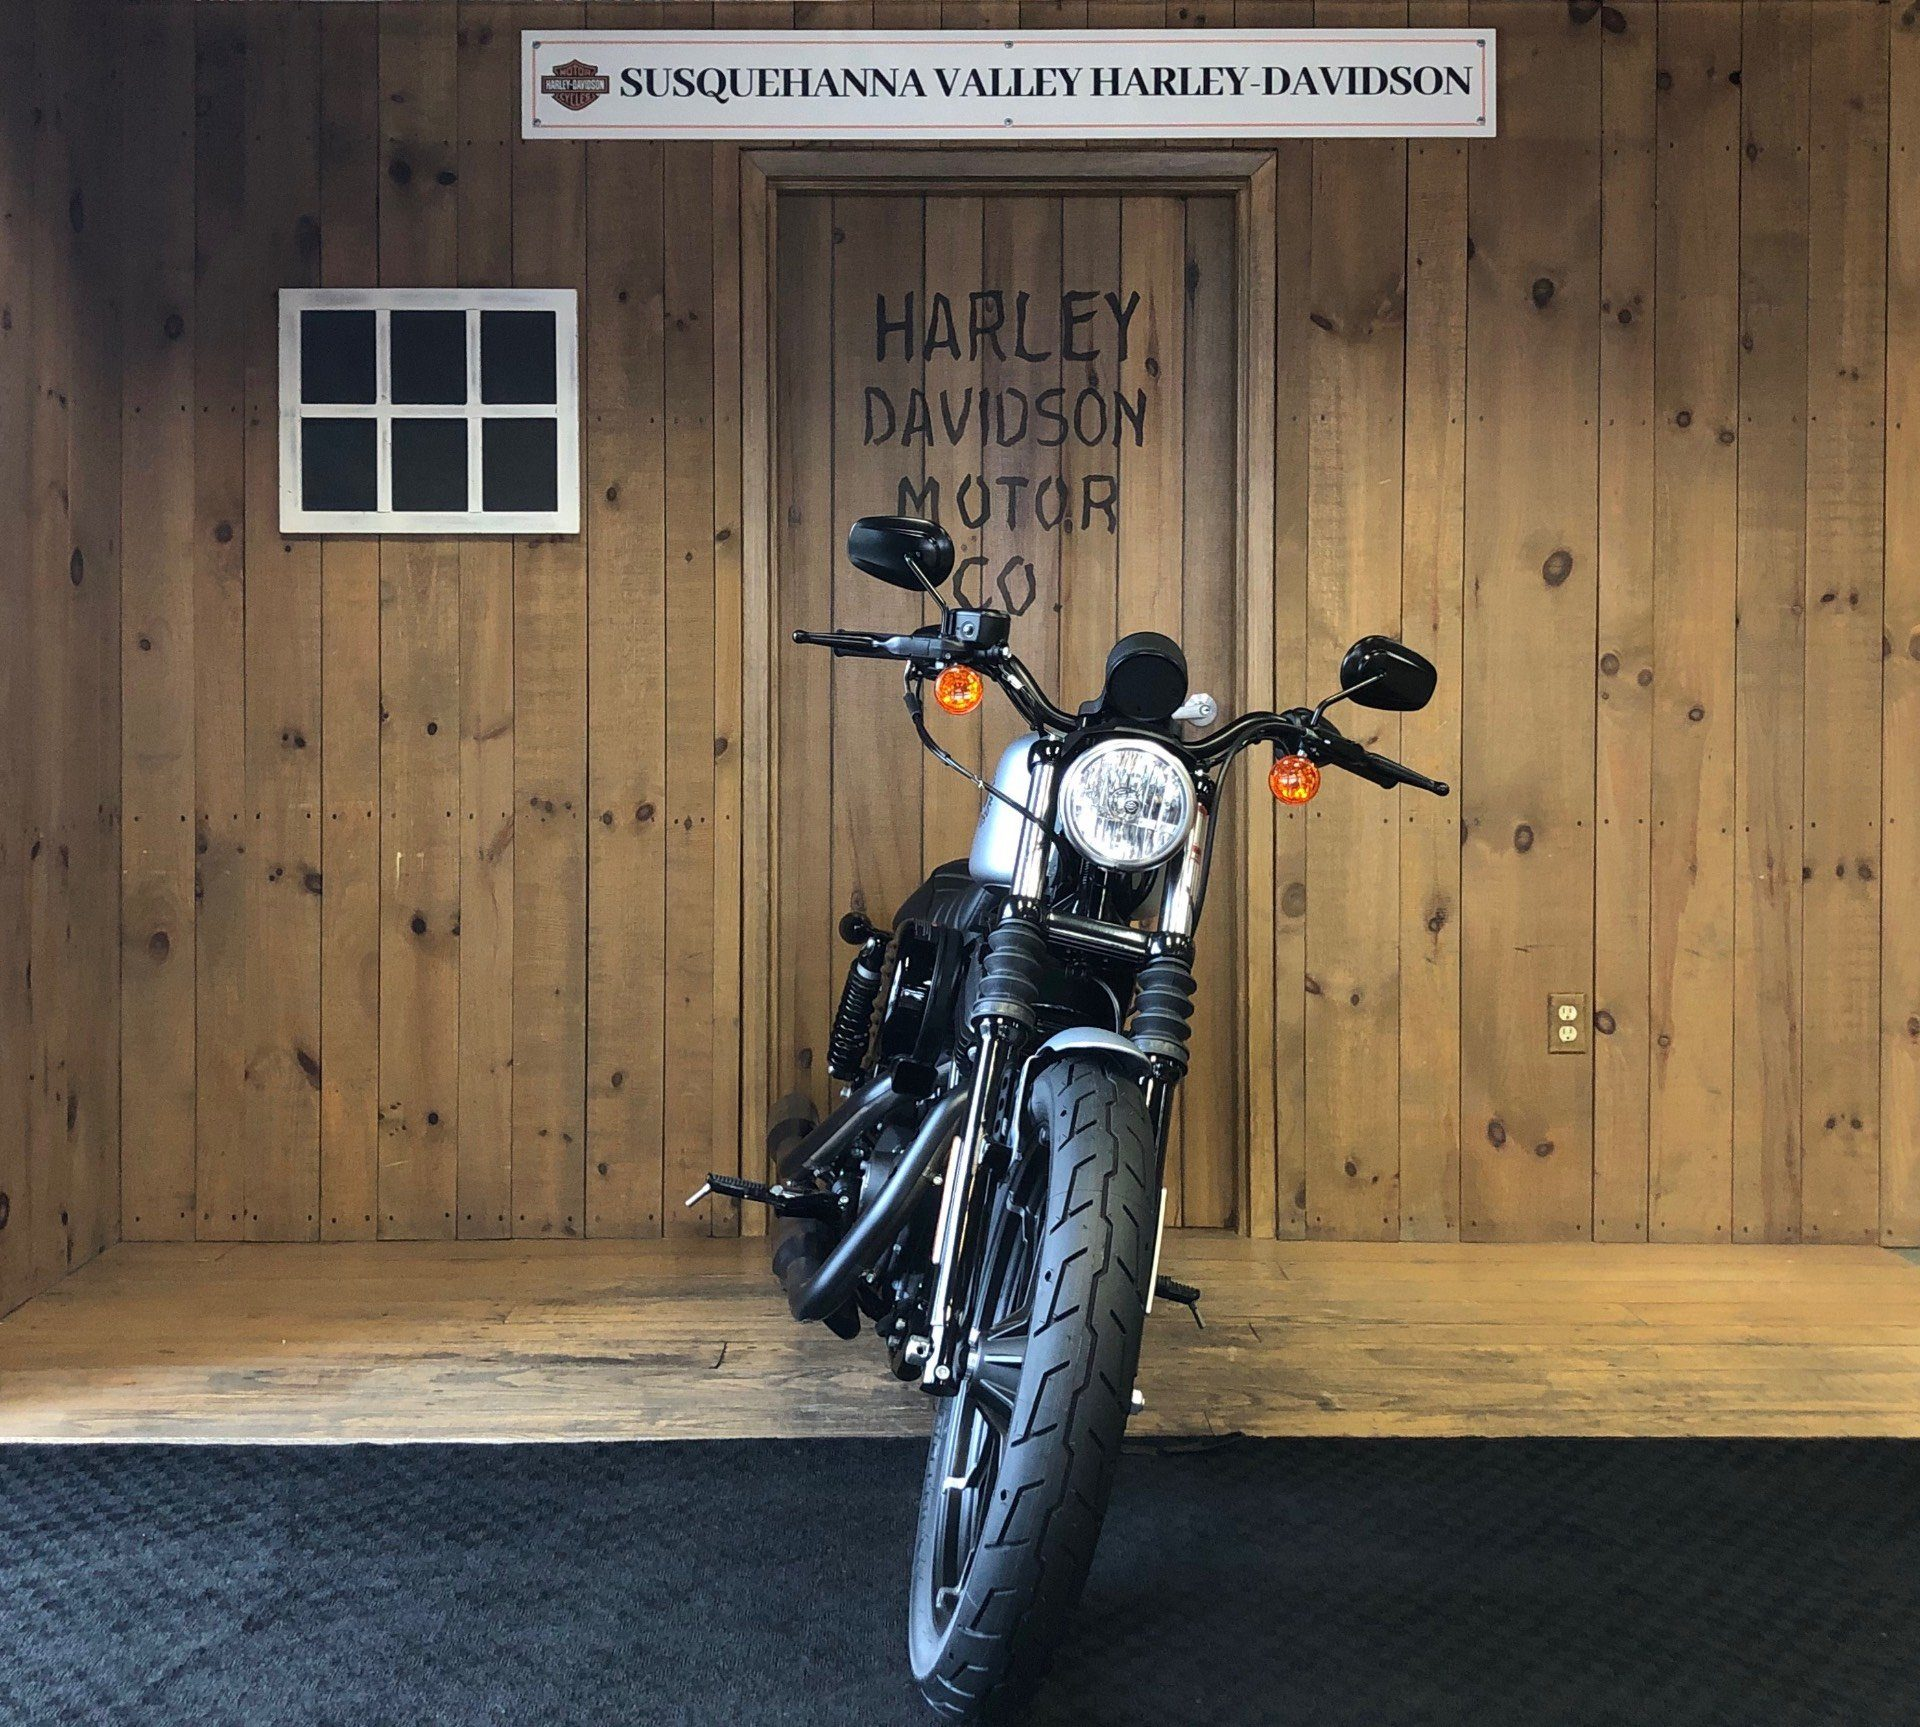 2020 Harley-Davidson XL883N in Harrisburg, Pennsylvania - Photo 3